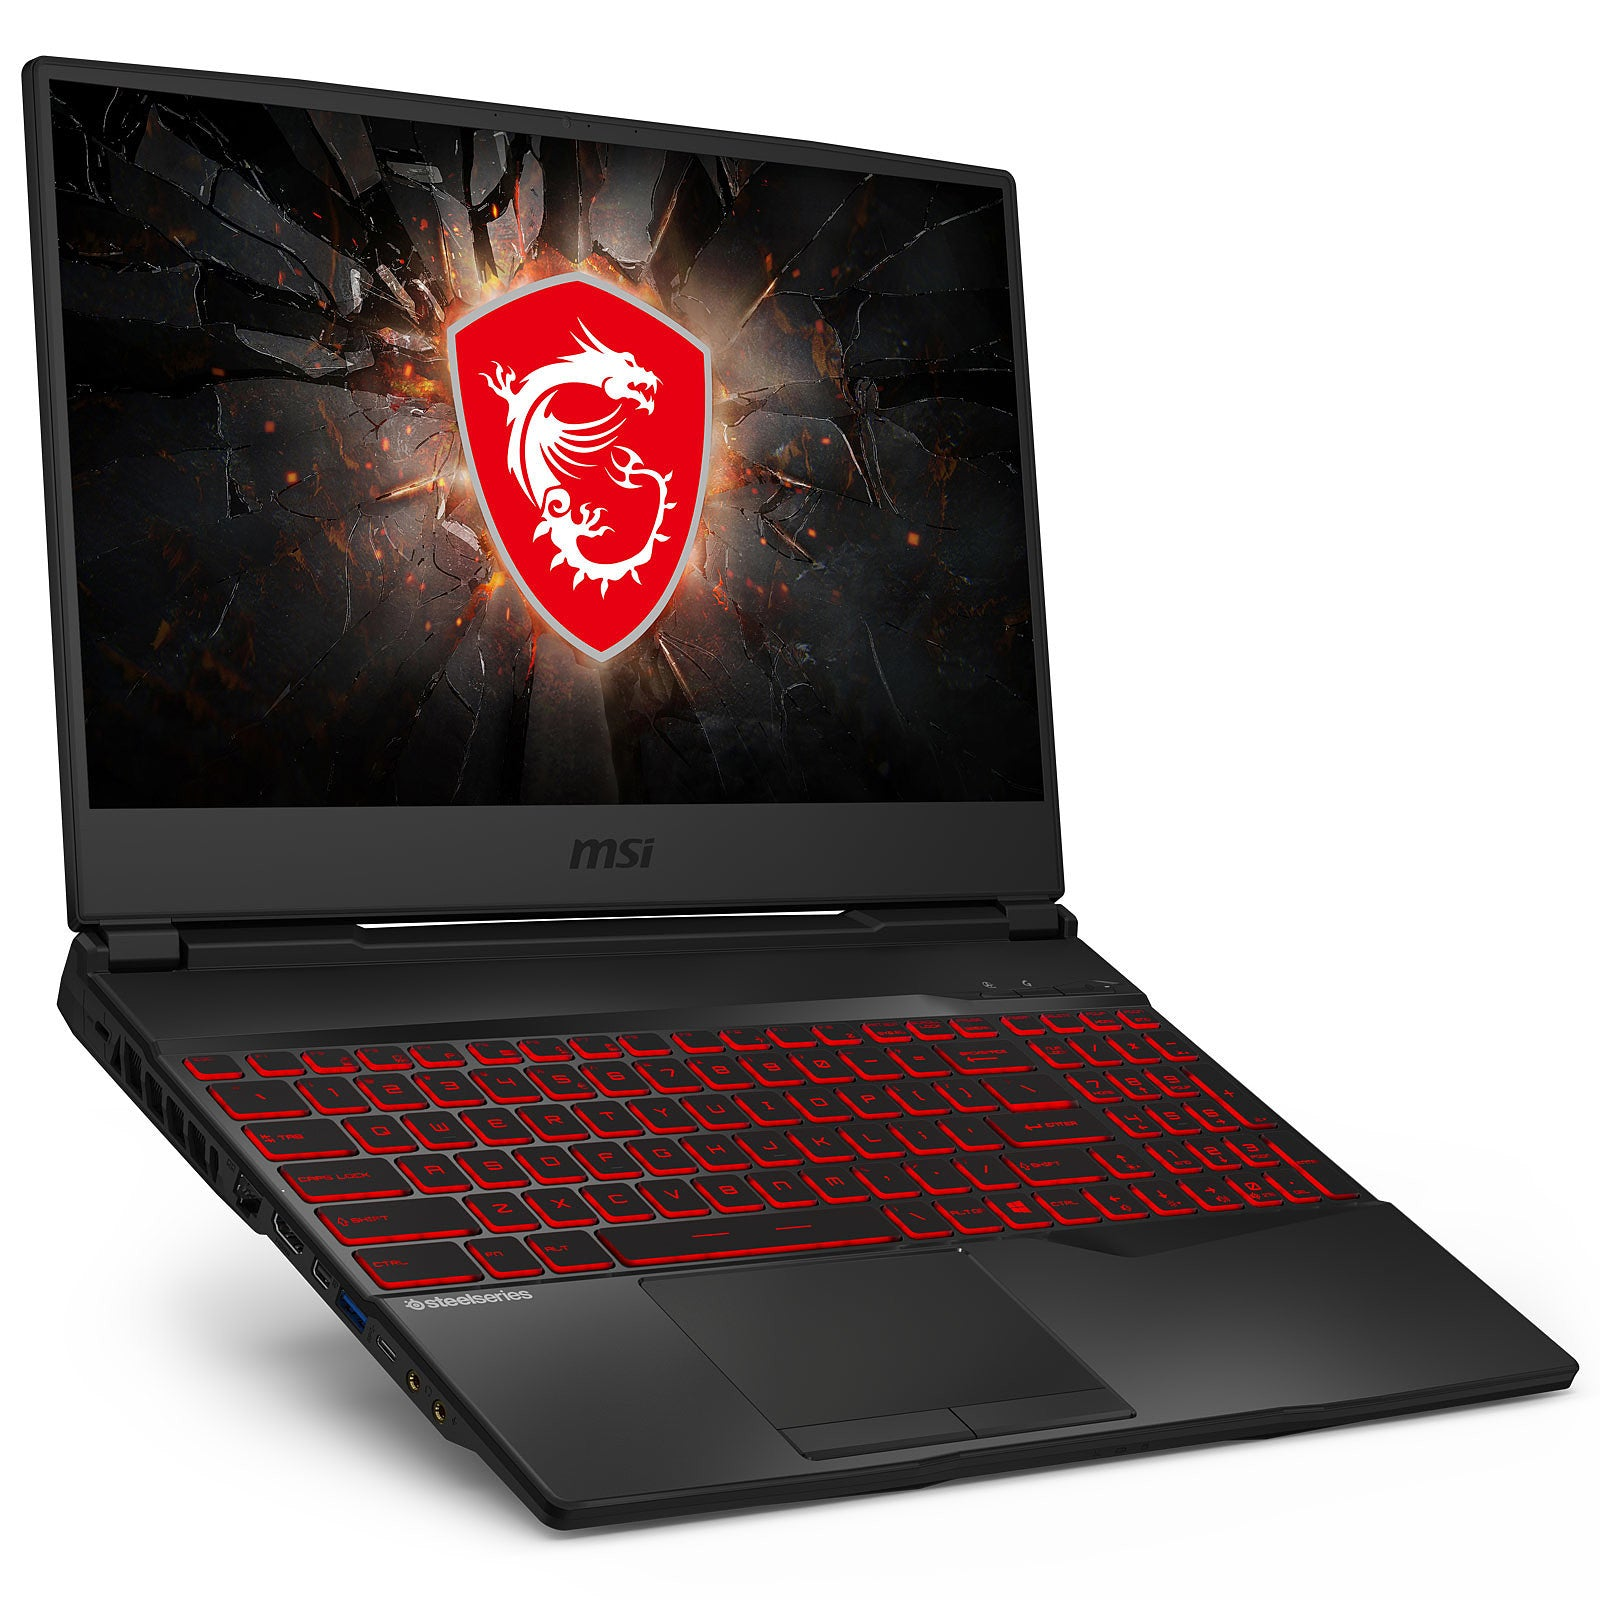 "MSI 15.6"" GL65 9SD i7 Gaming Laptop i7-9750H, 16GB RAM, GTX 1660 Ti"